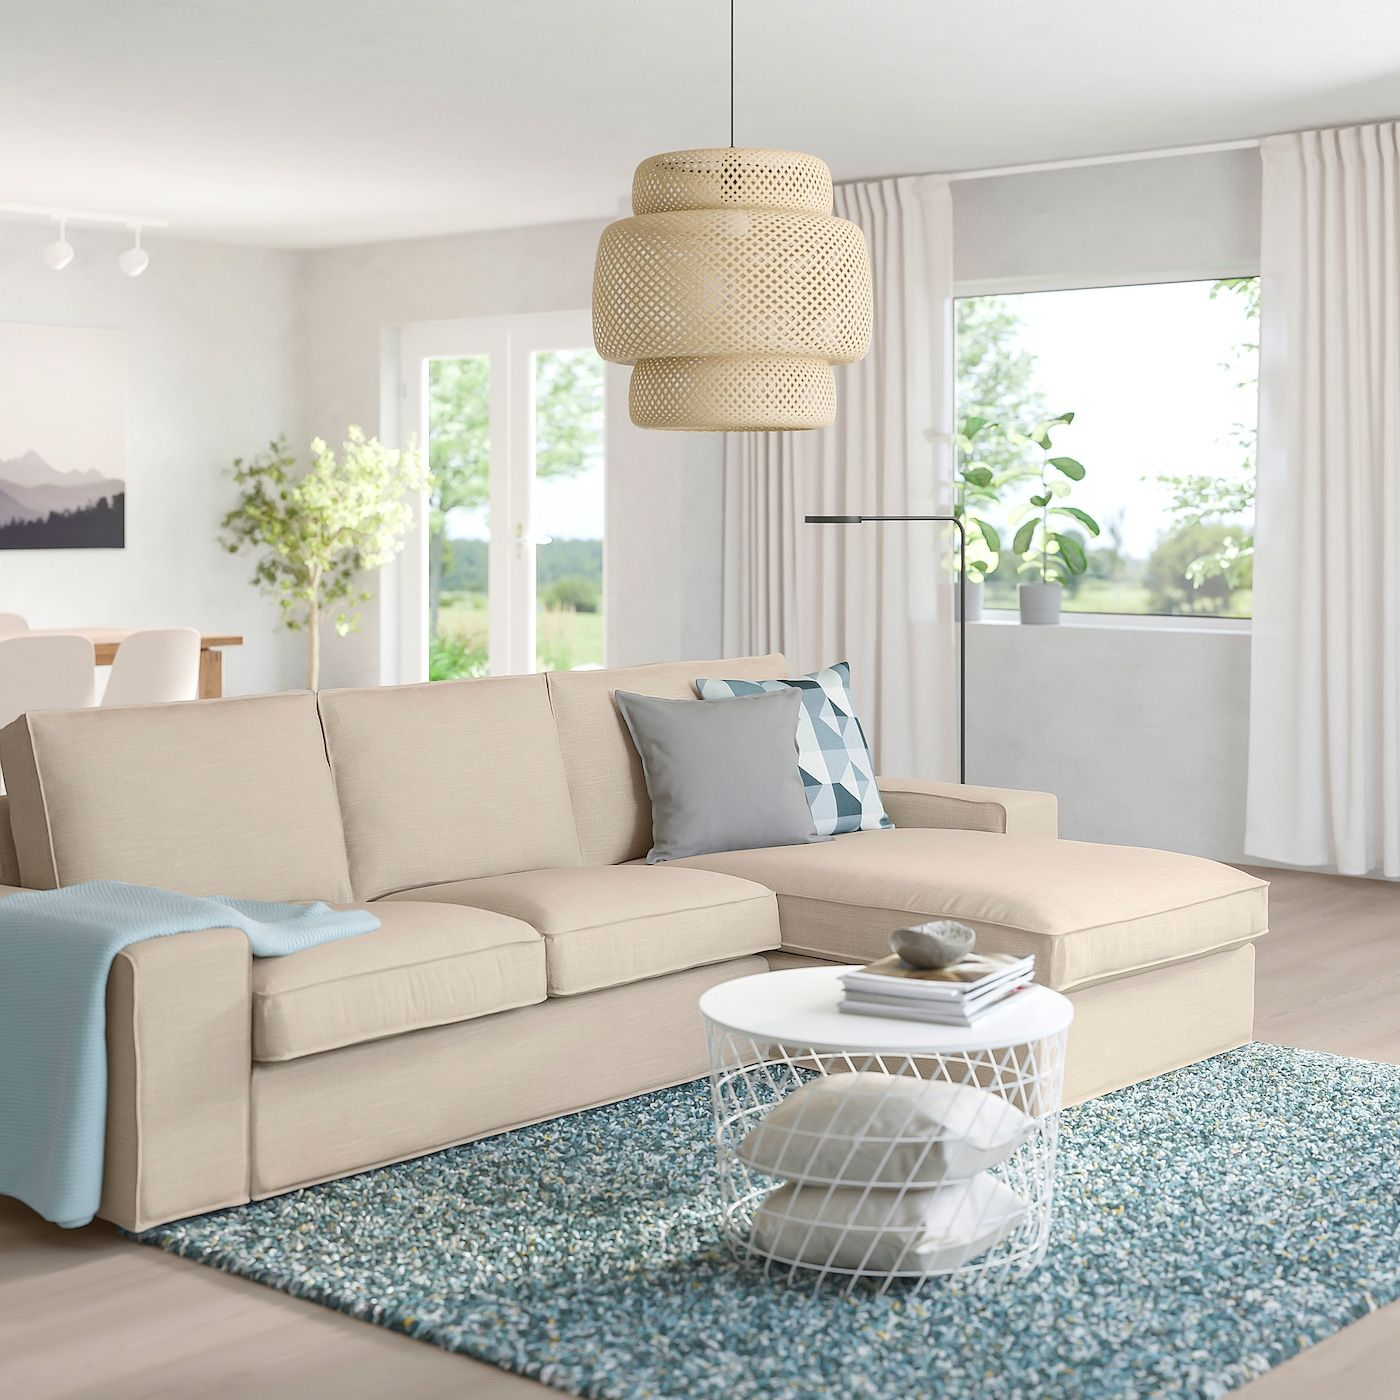 KIVIK Sofa Hillared with chaise, Hillared beige in 2020